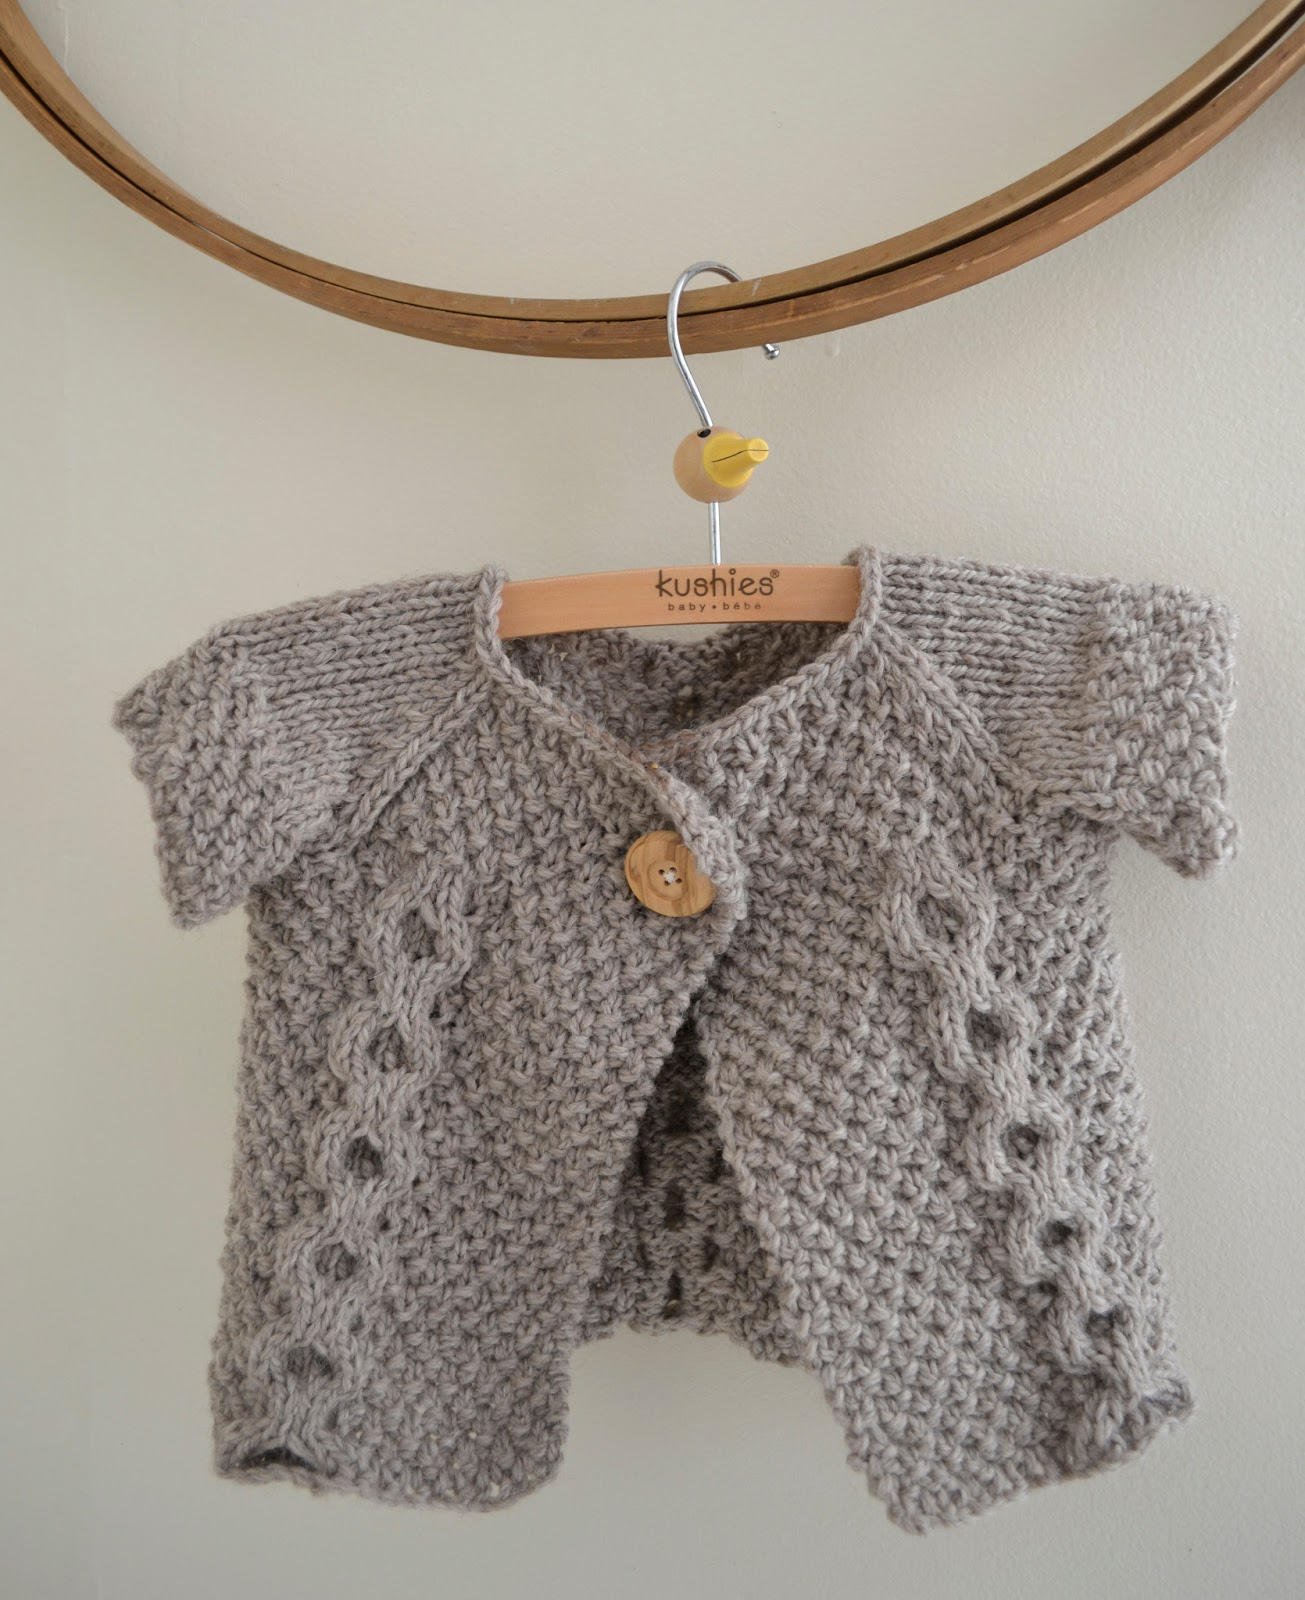 Knitting Patterns For Cardigans : Baby Sweater Knitting Pattern A Knitting Blog